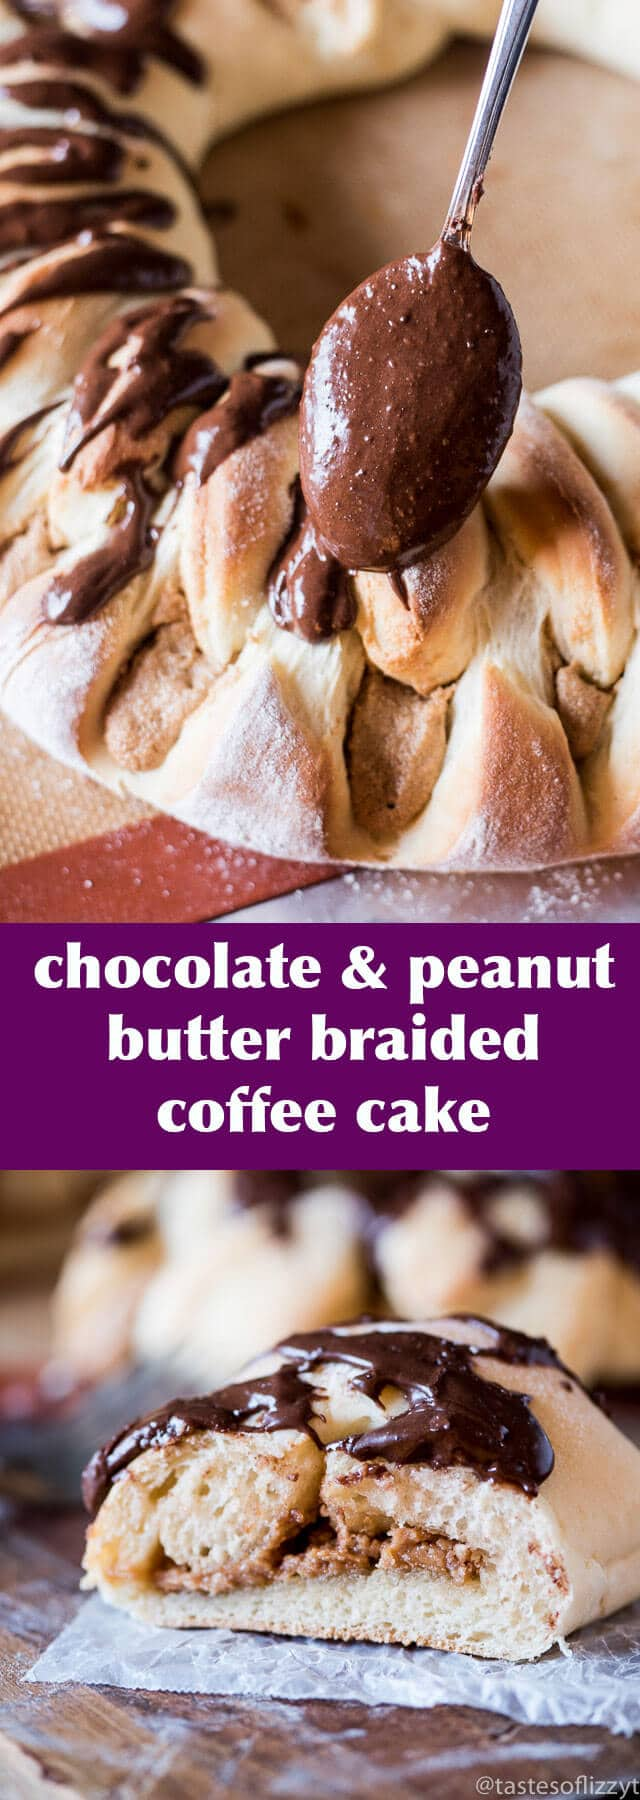 chocolate peanut butter braided coffee cake recipe / peanut butter stuffed bread / chocolate frosting / braided coffee cake ring / recipe